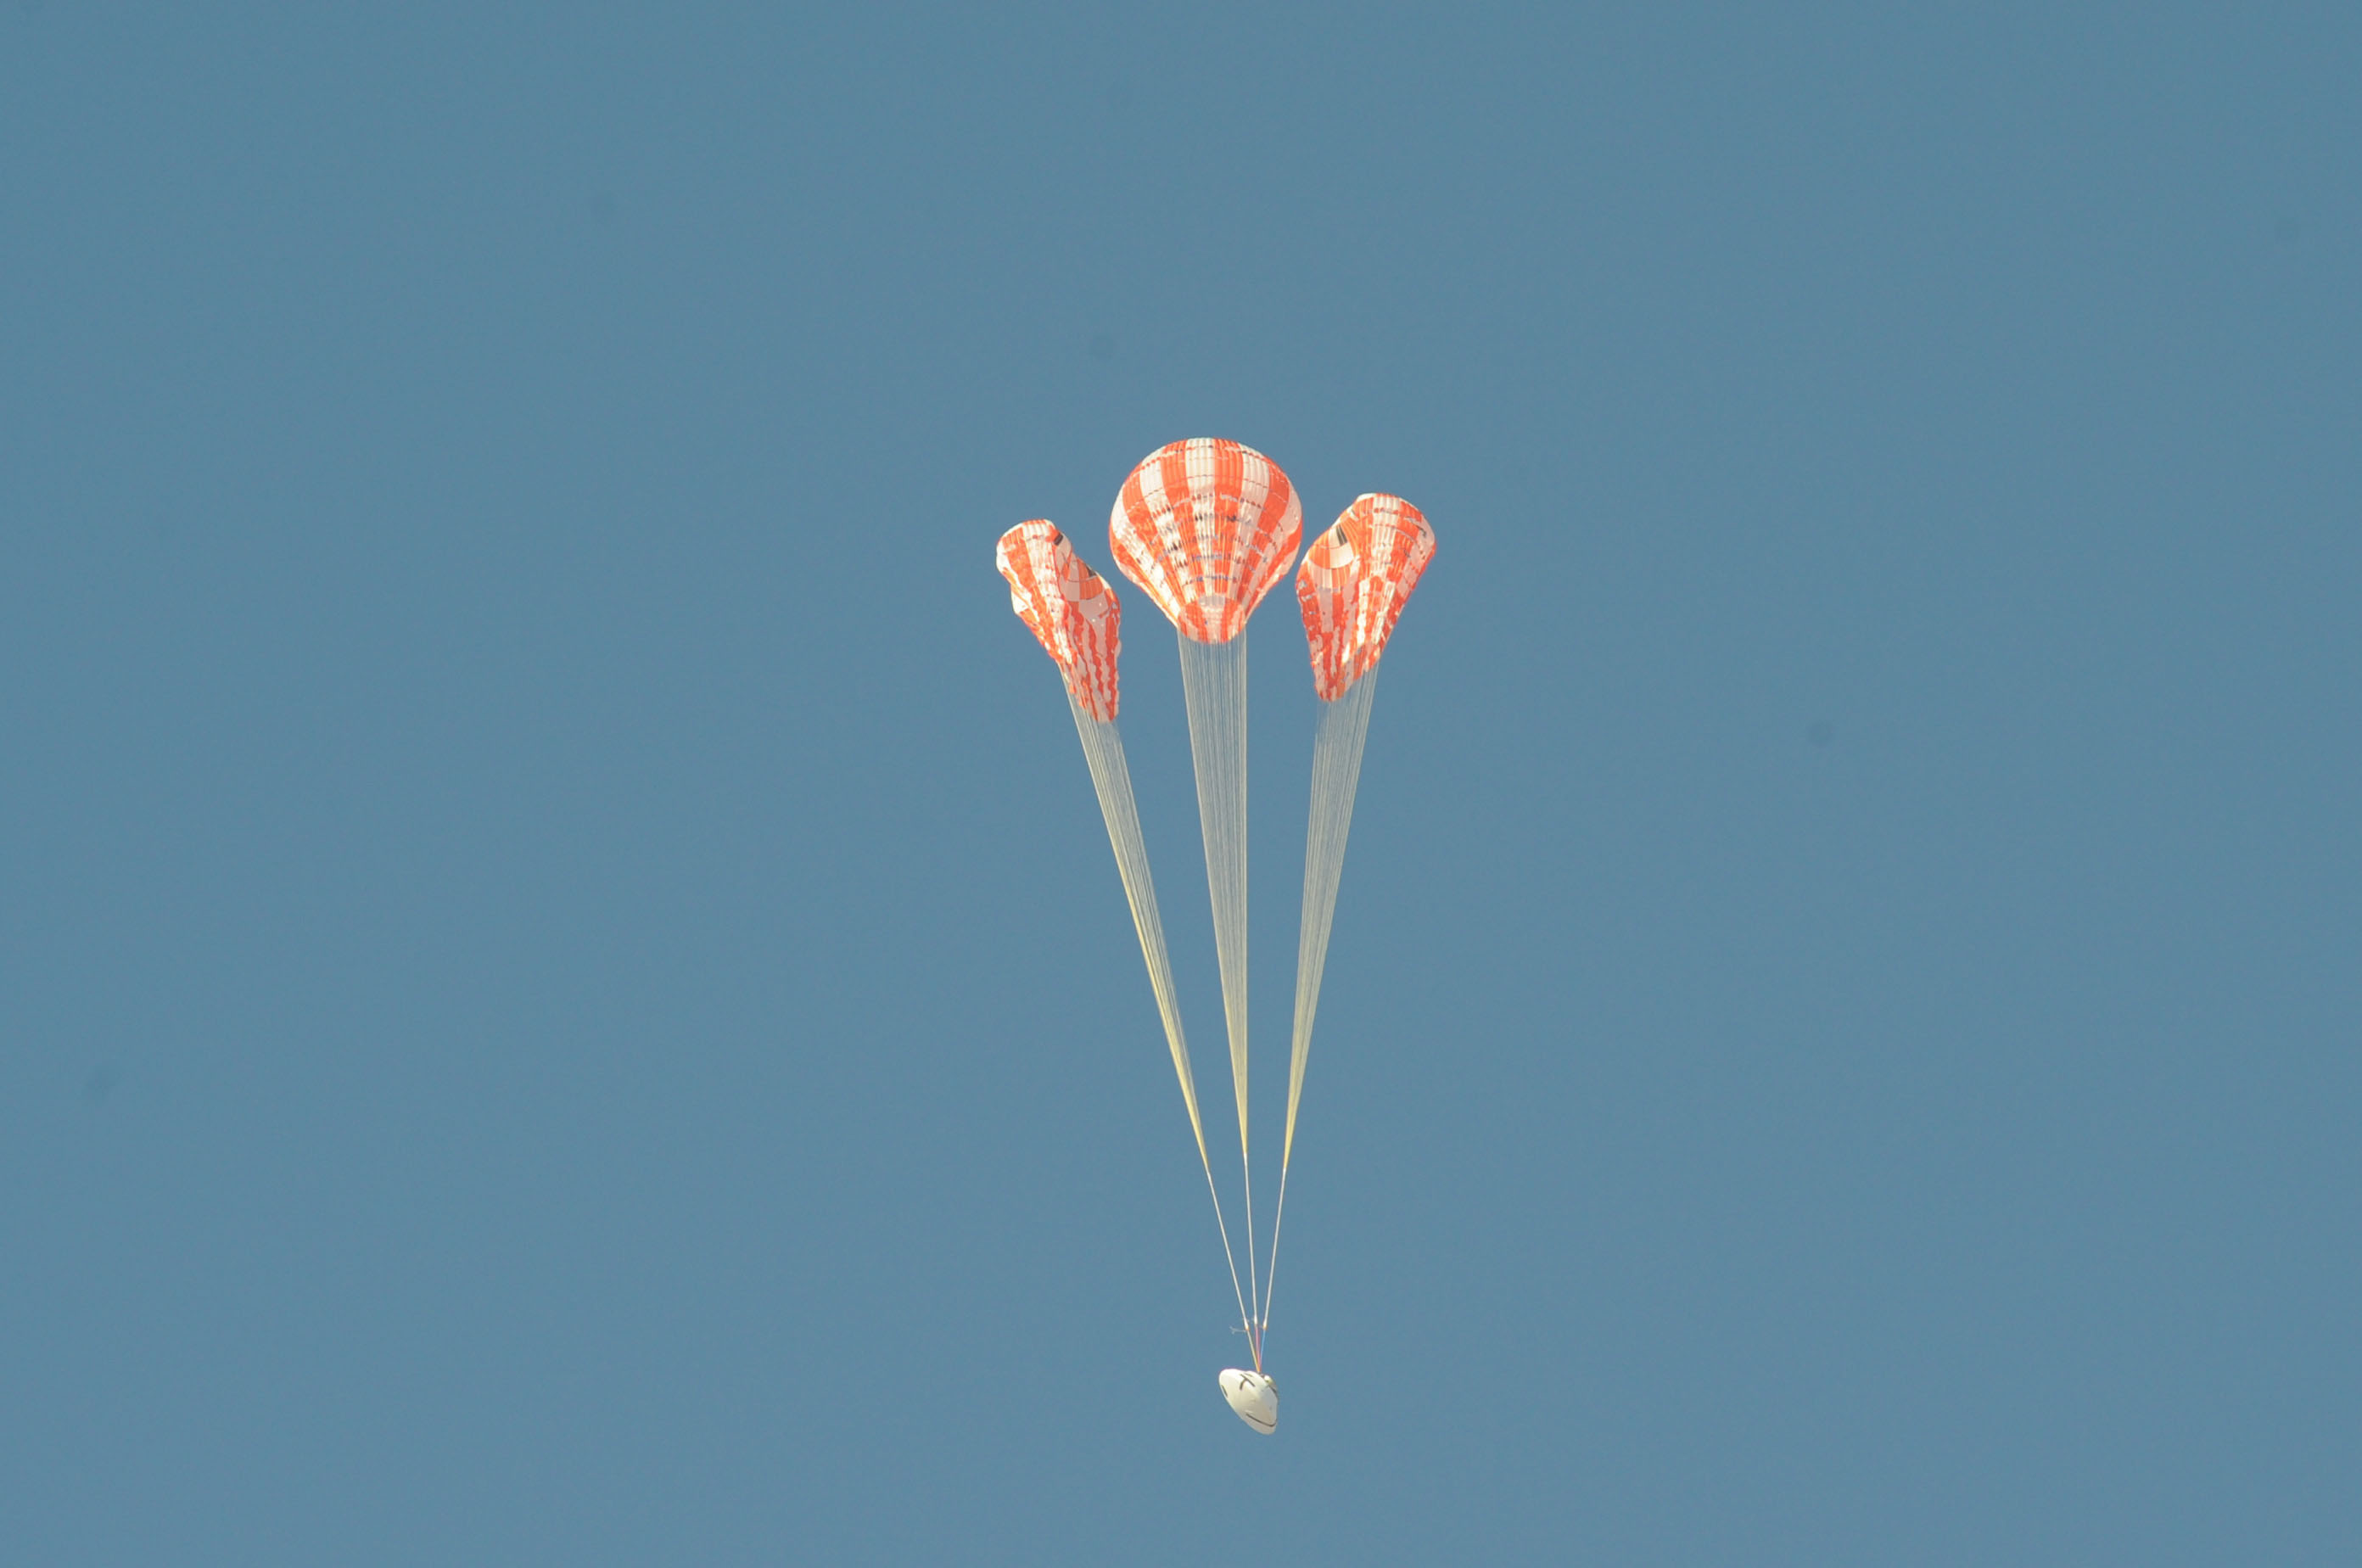 To test the Orion parachute system, engineers rigged one of the test capsule's three main parachutes – the middle parachute in this view – to skip one stage of its inflation, putting additional stress on the vehicle as it opened. Testing irregularities allows engineers to verify the parachutes are reliable even when something goes wrong. The information gathered during the test can help refine models used to build the system and Orion.